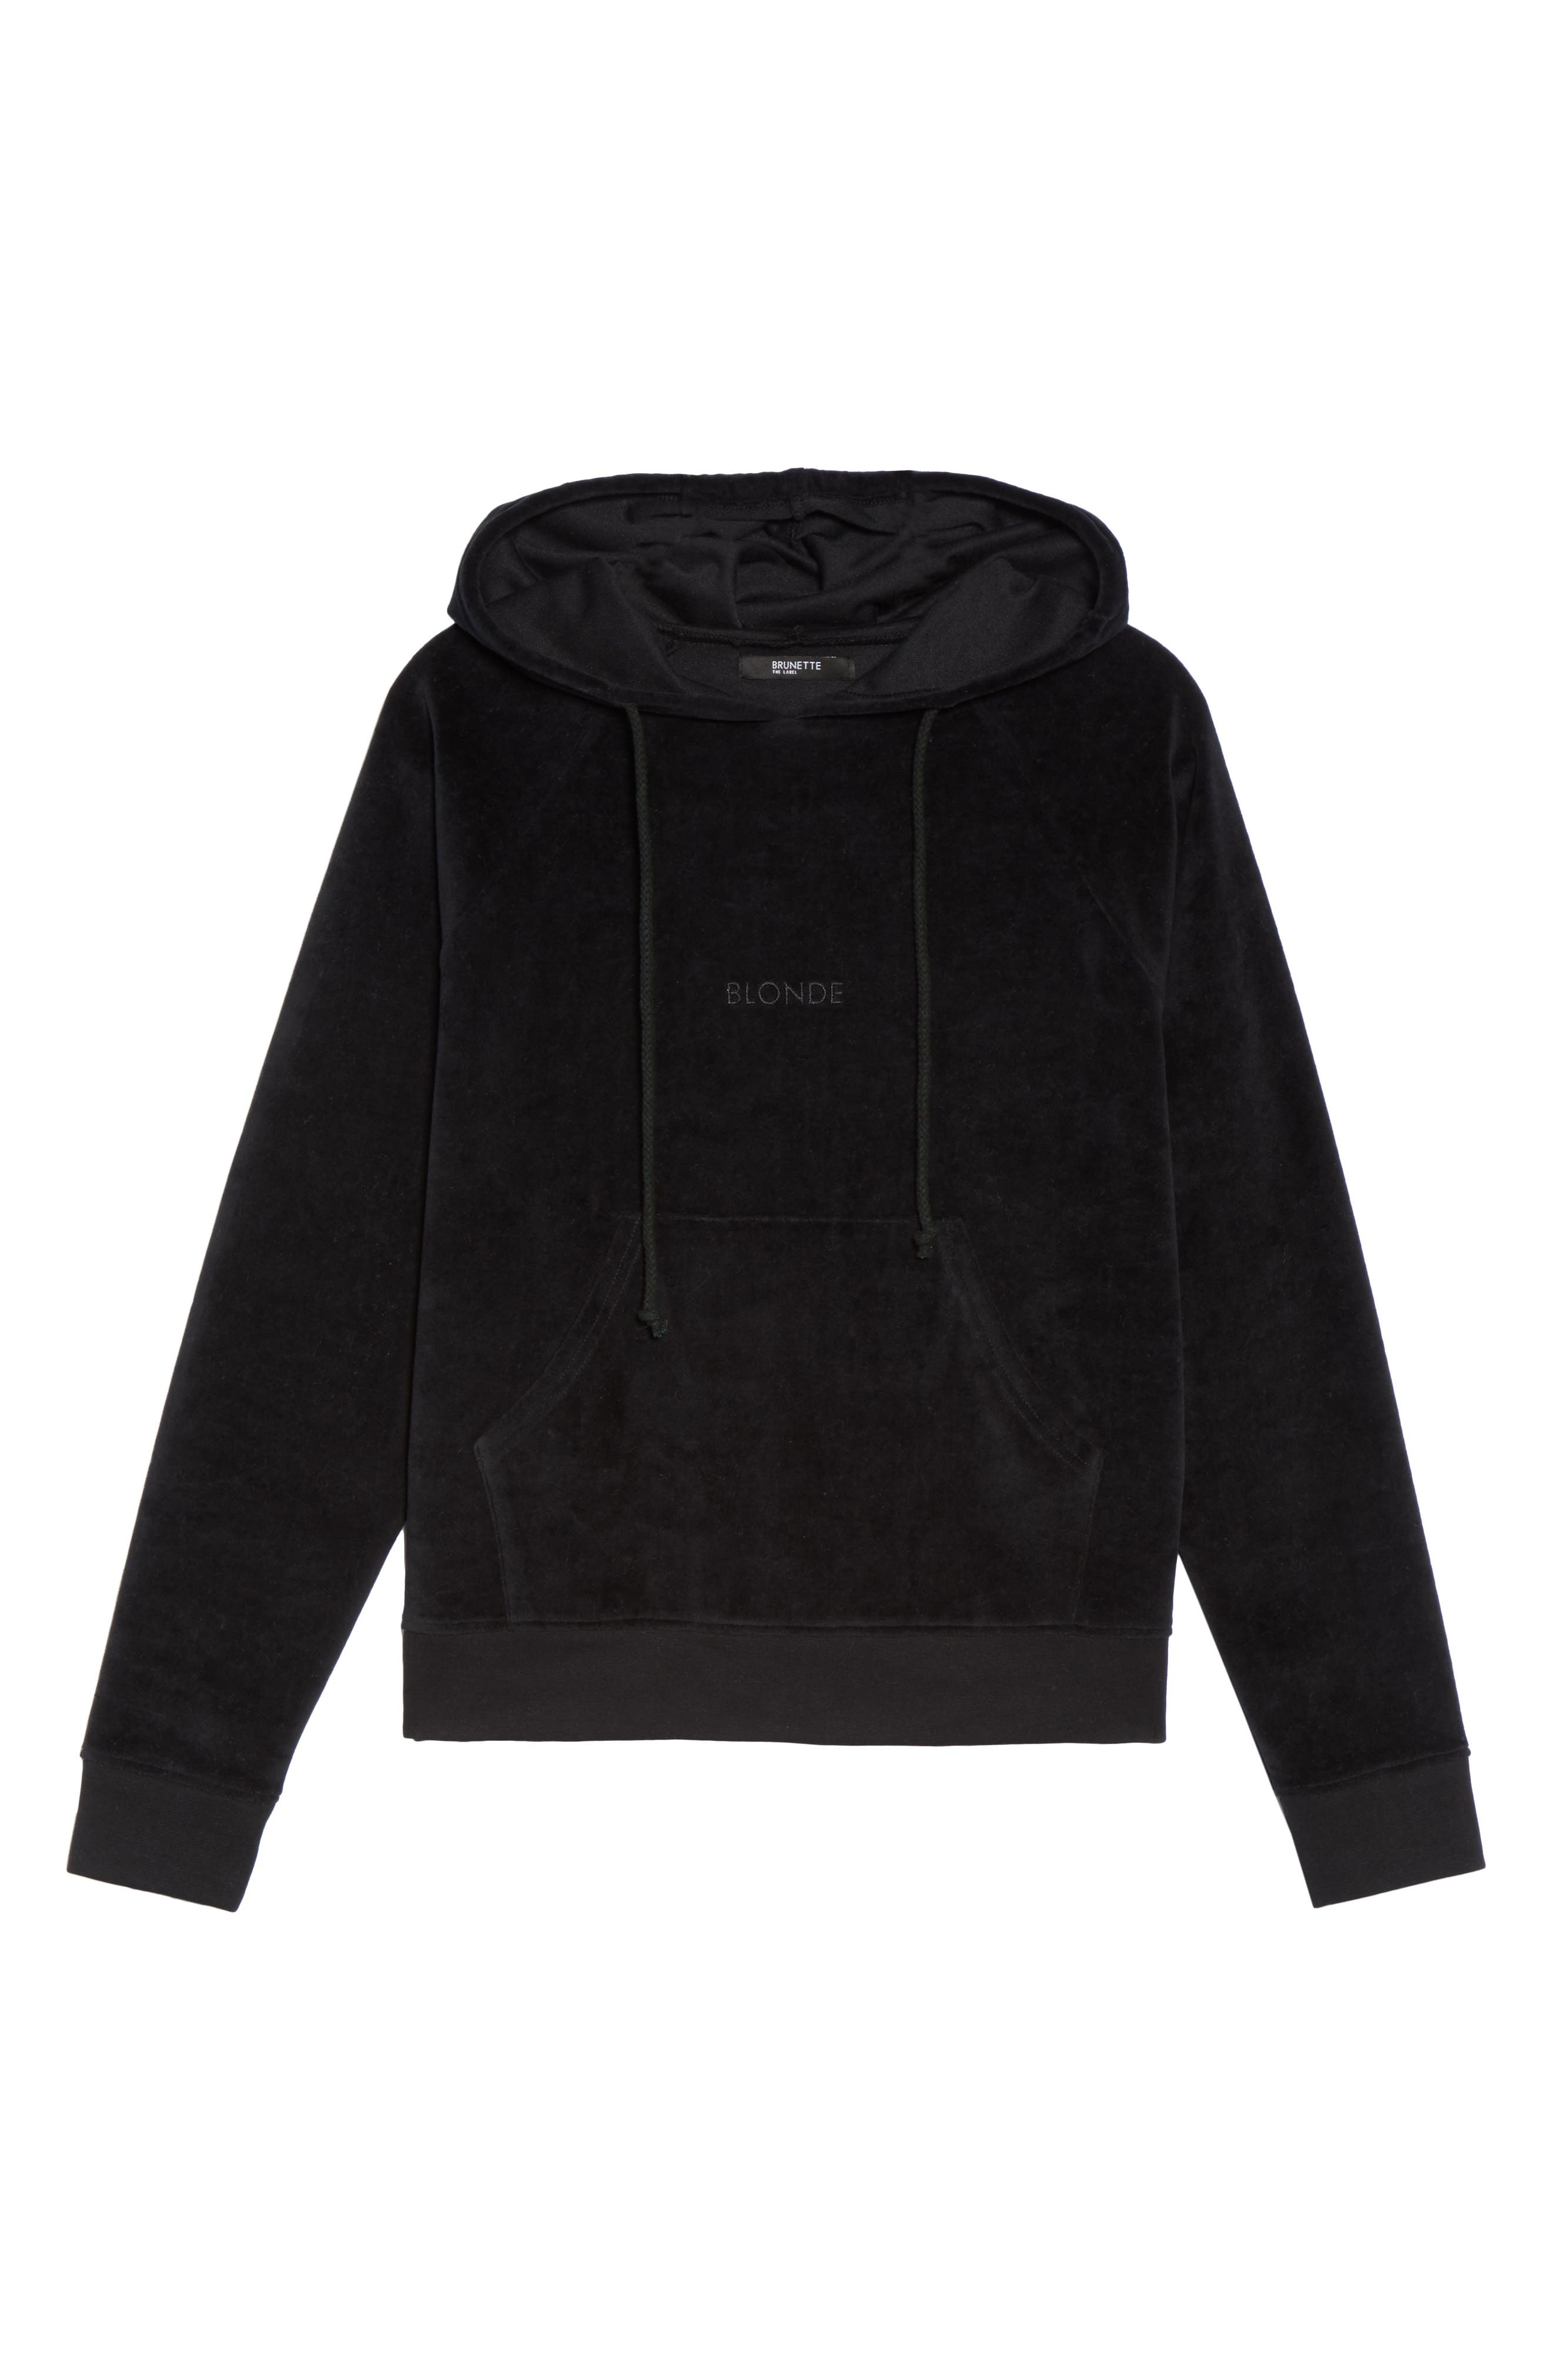 Blonde Embroidered Velour Hoodie,                             Alternate thumbnail 6, color,